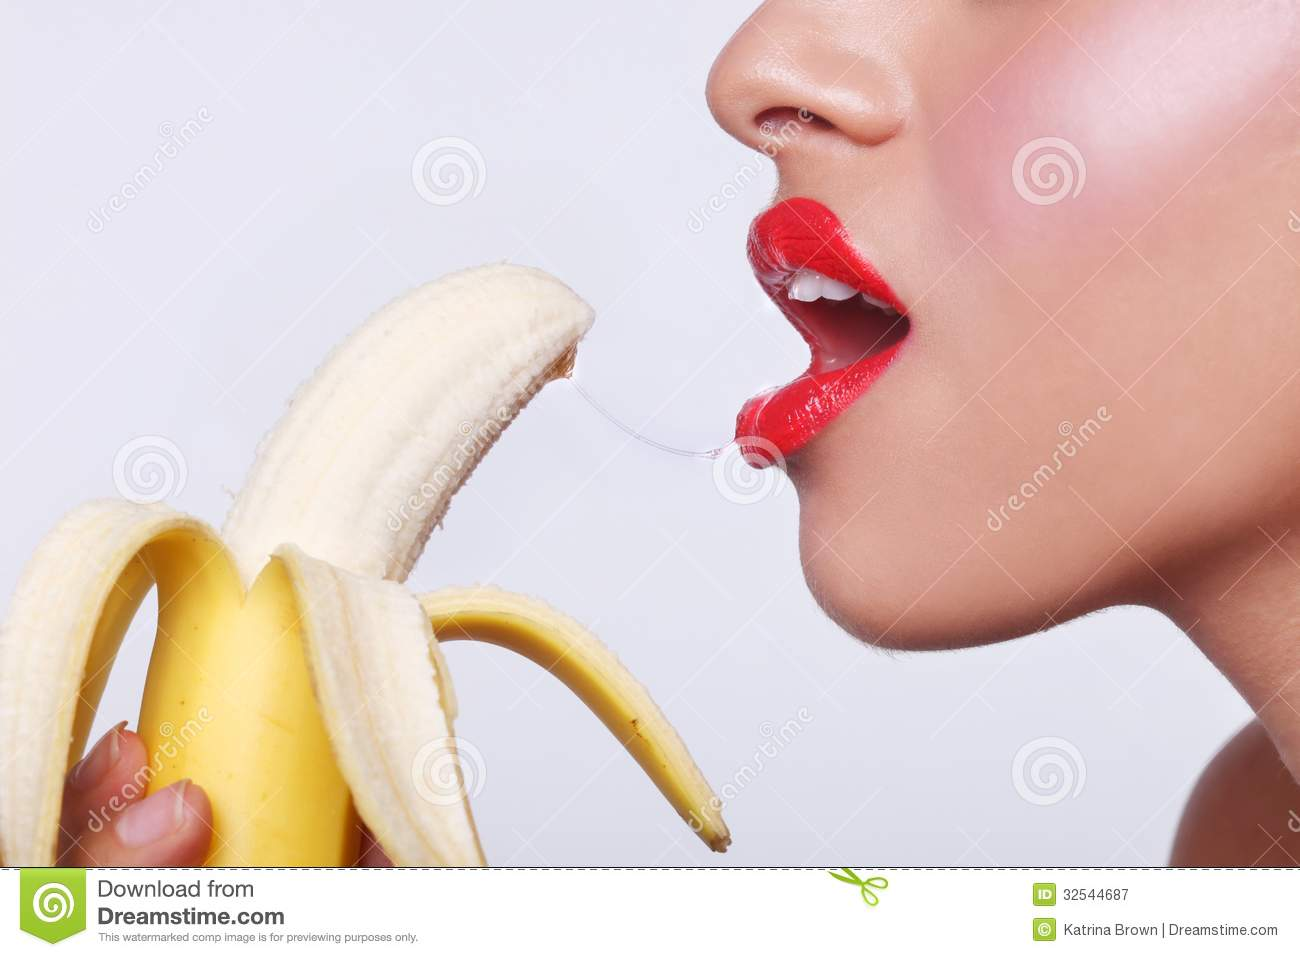 Sensual Woman Preparing To Eat A Banana Royalty Free Stock Photography ...